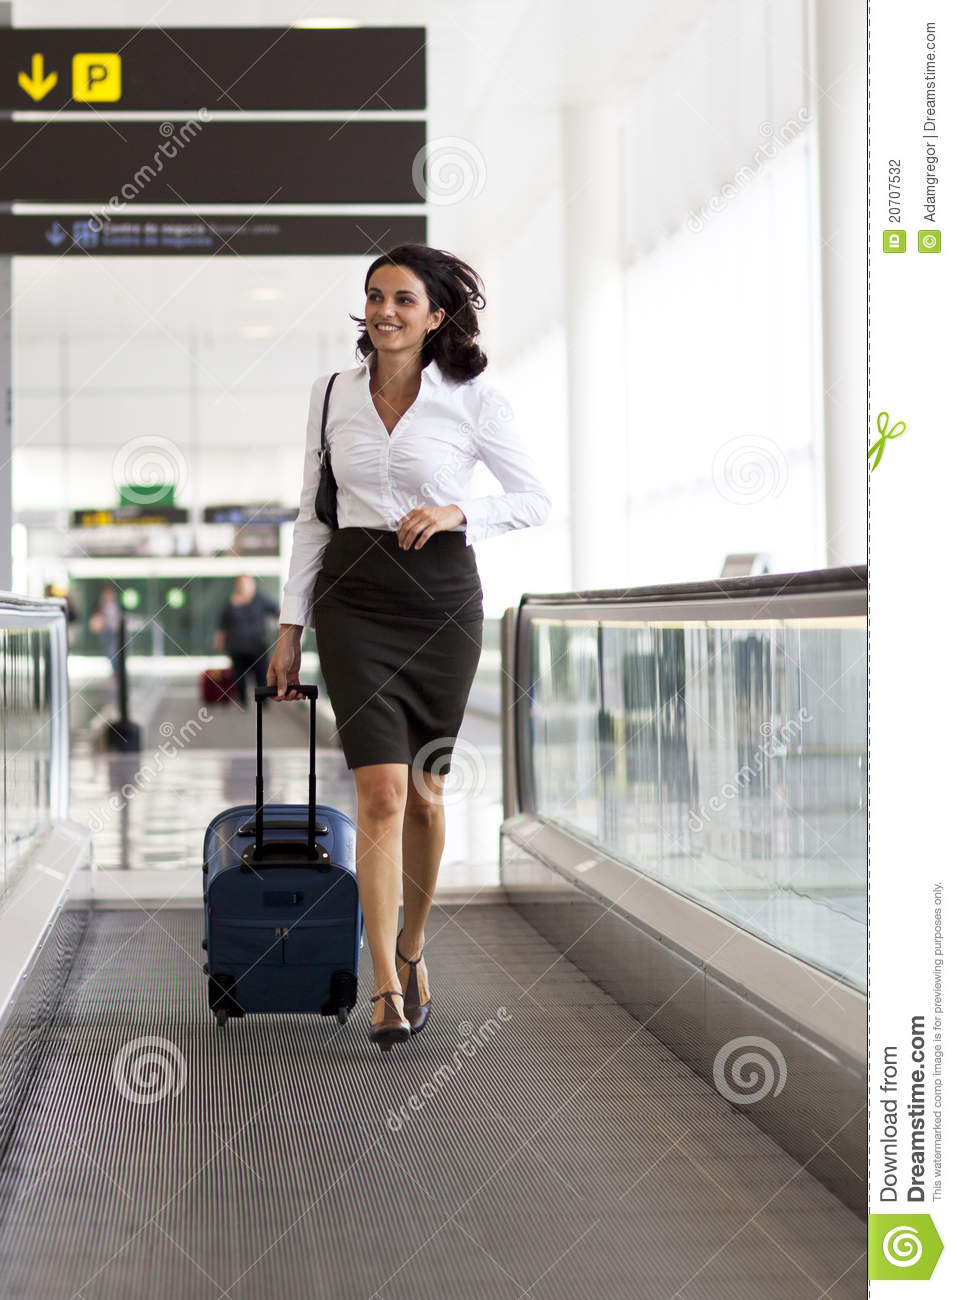 Asian Woman In Airport 62